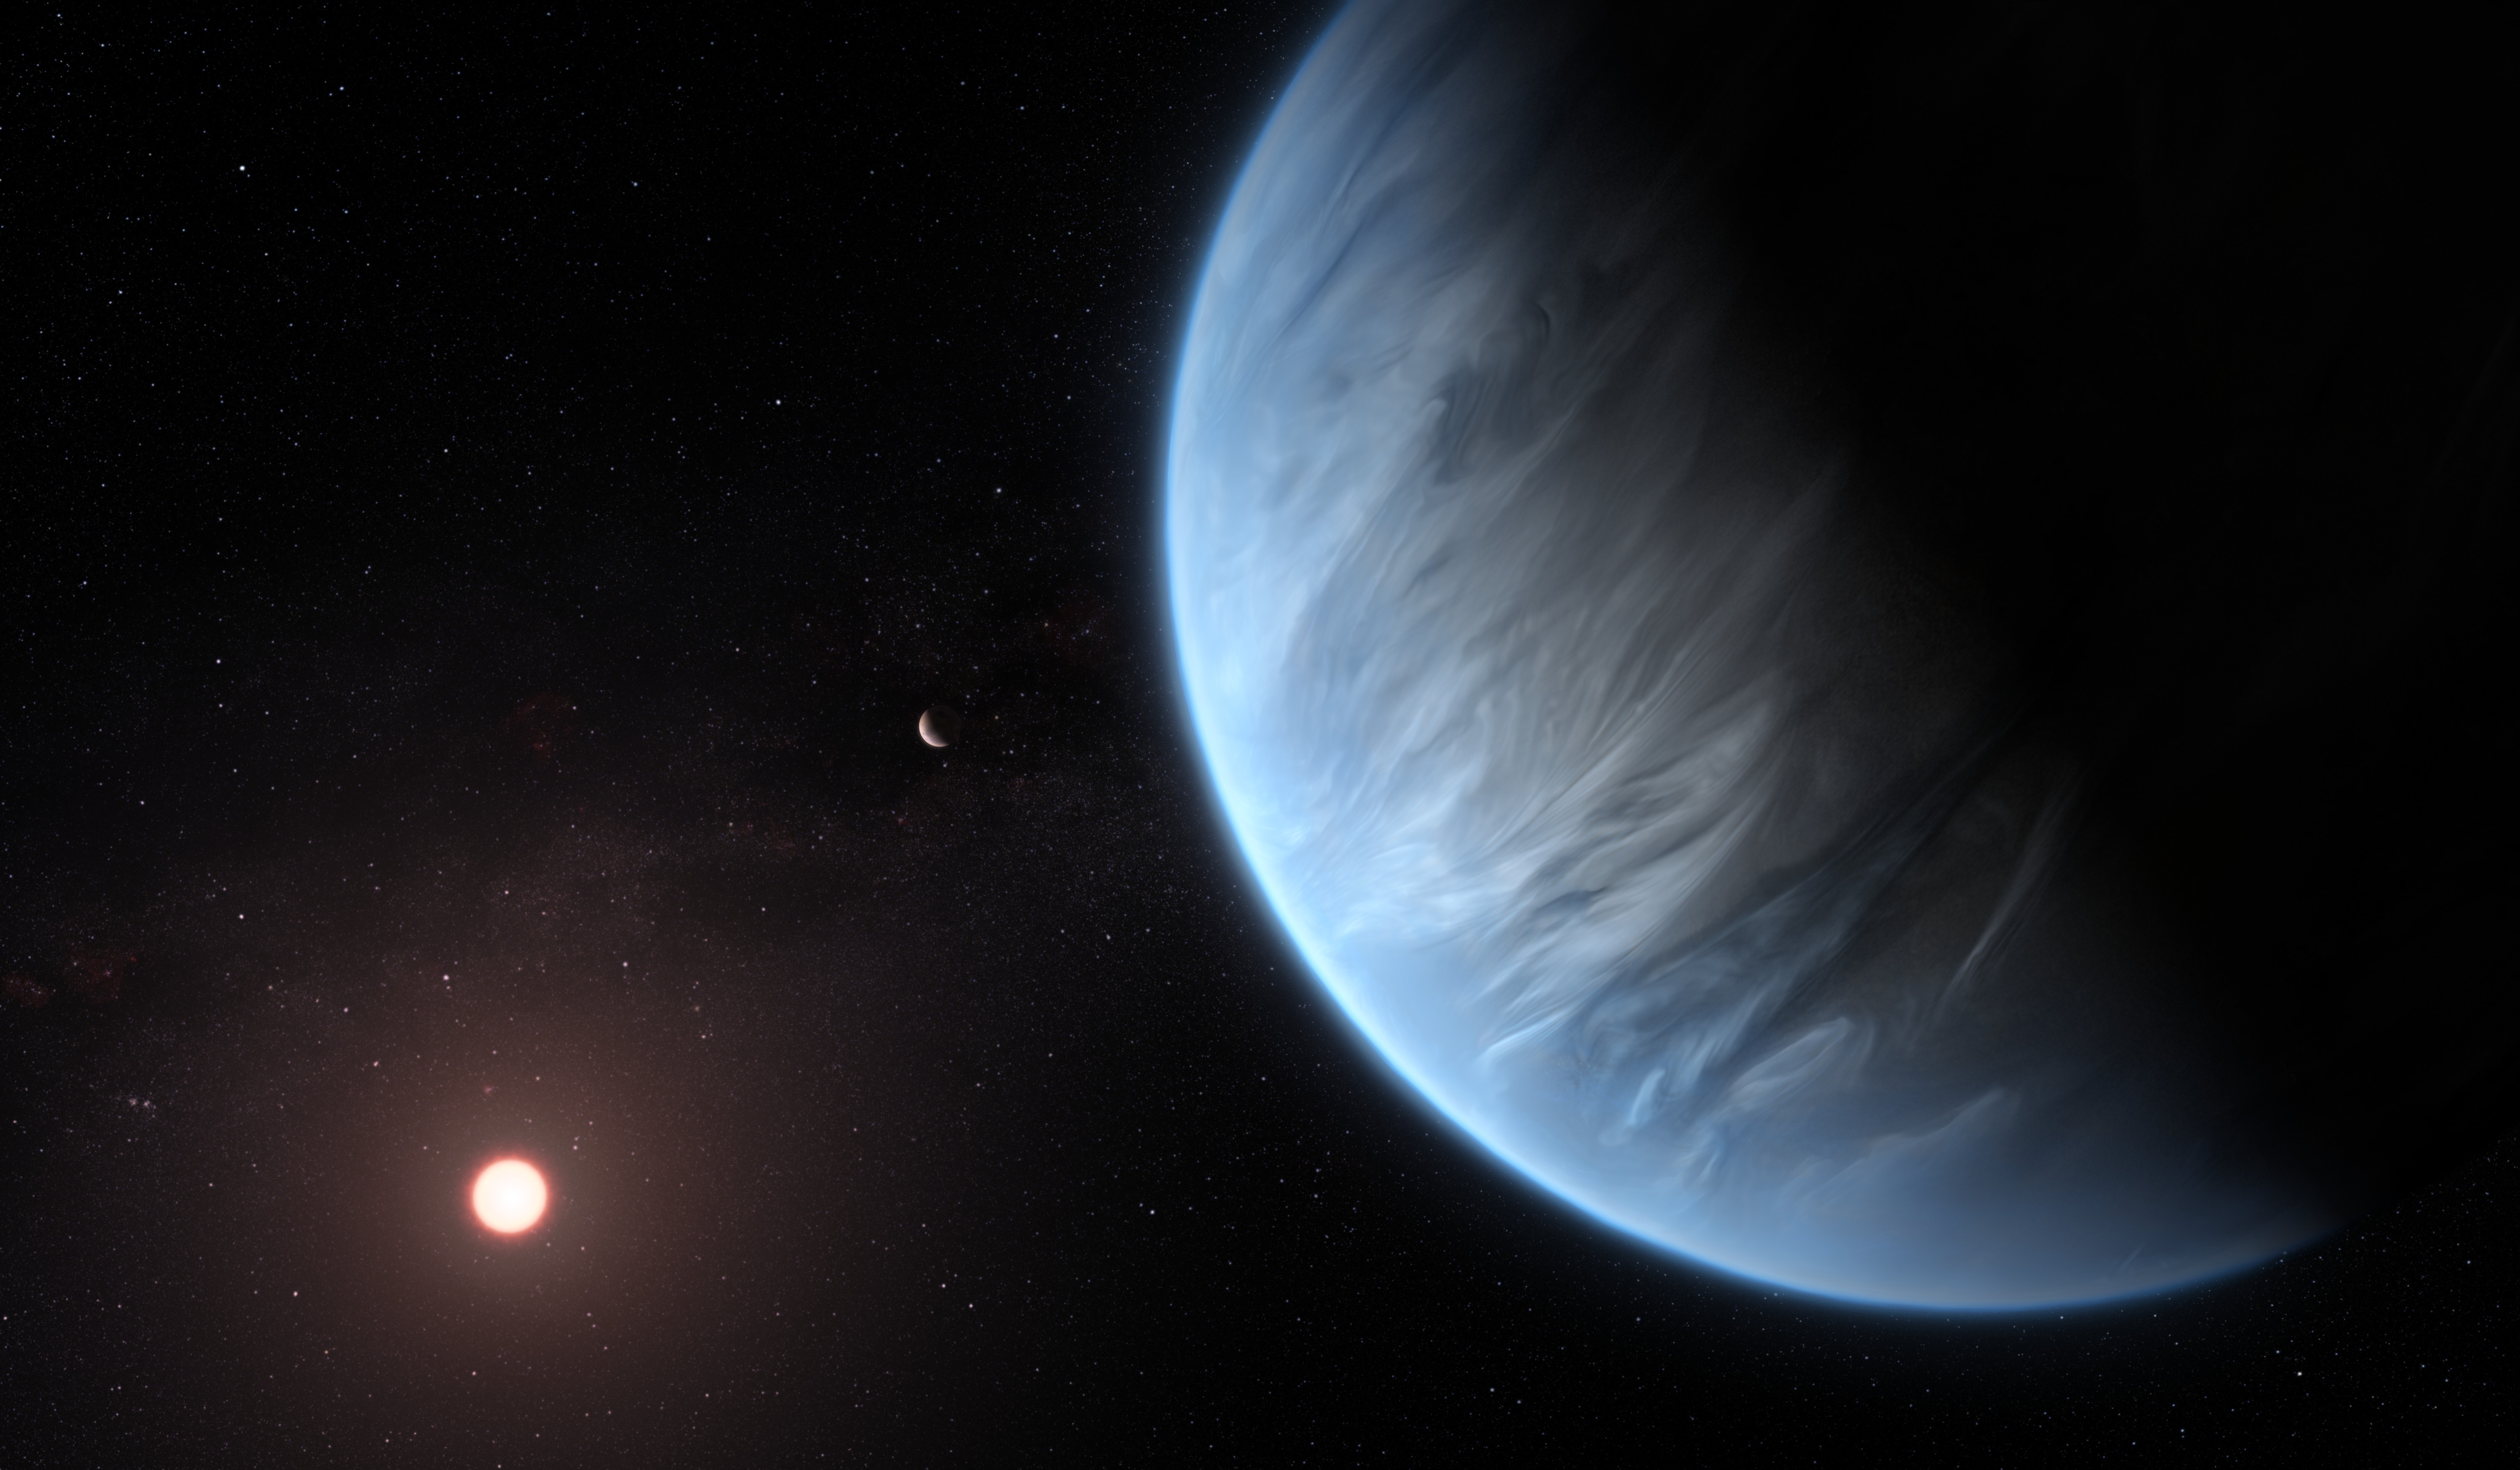 Hubble Finds Water Vapor on Habitable-Zone Exoplanet for 1st Time